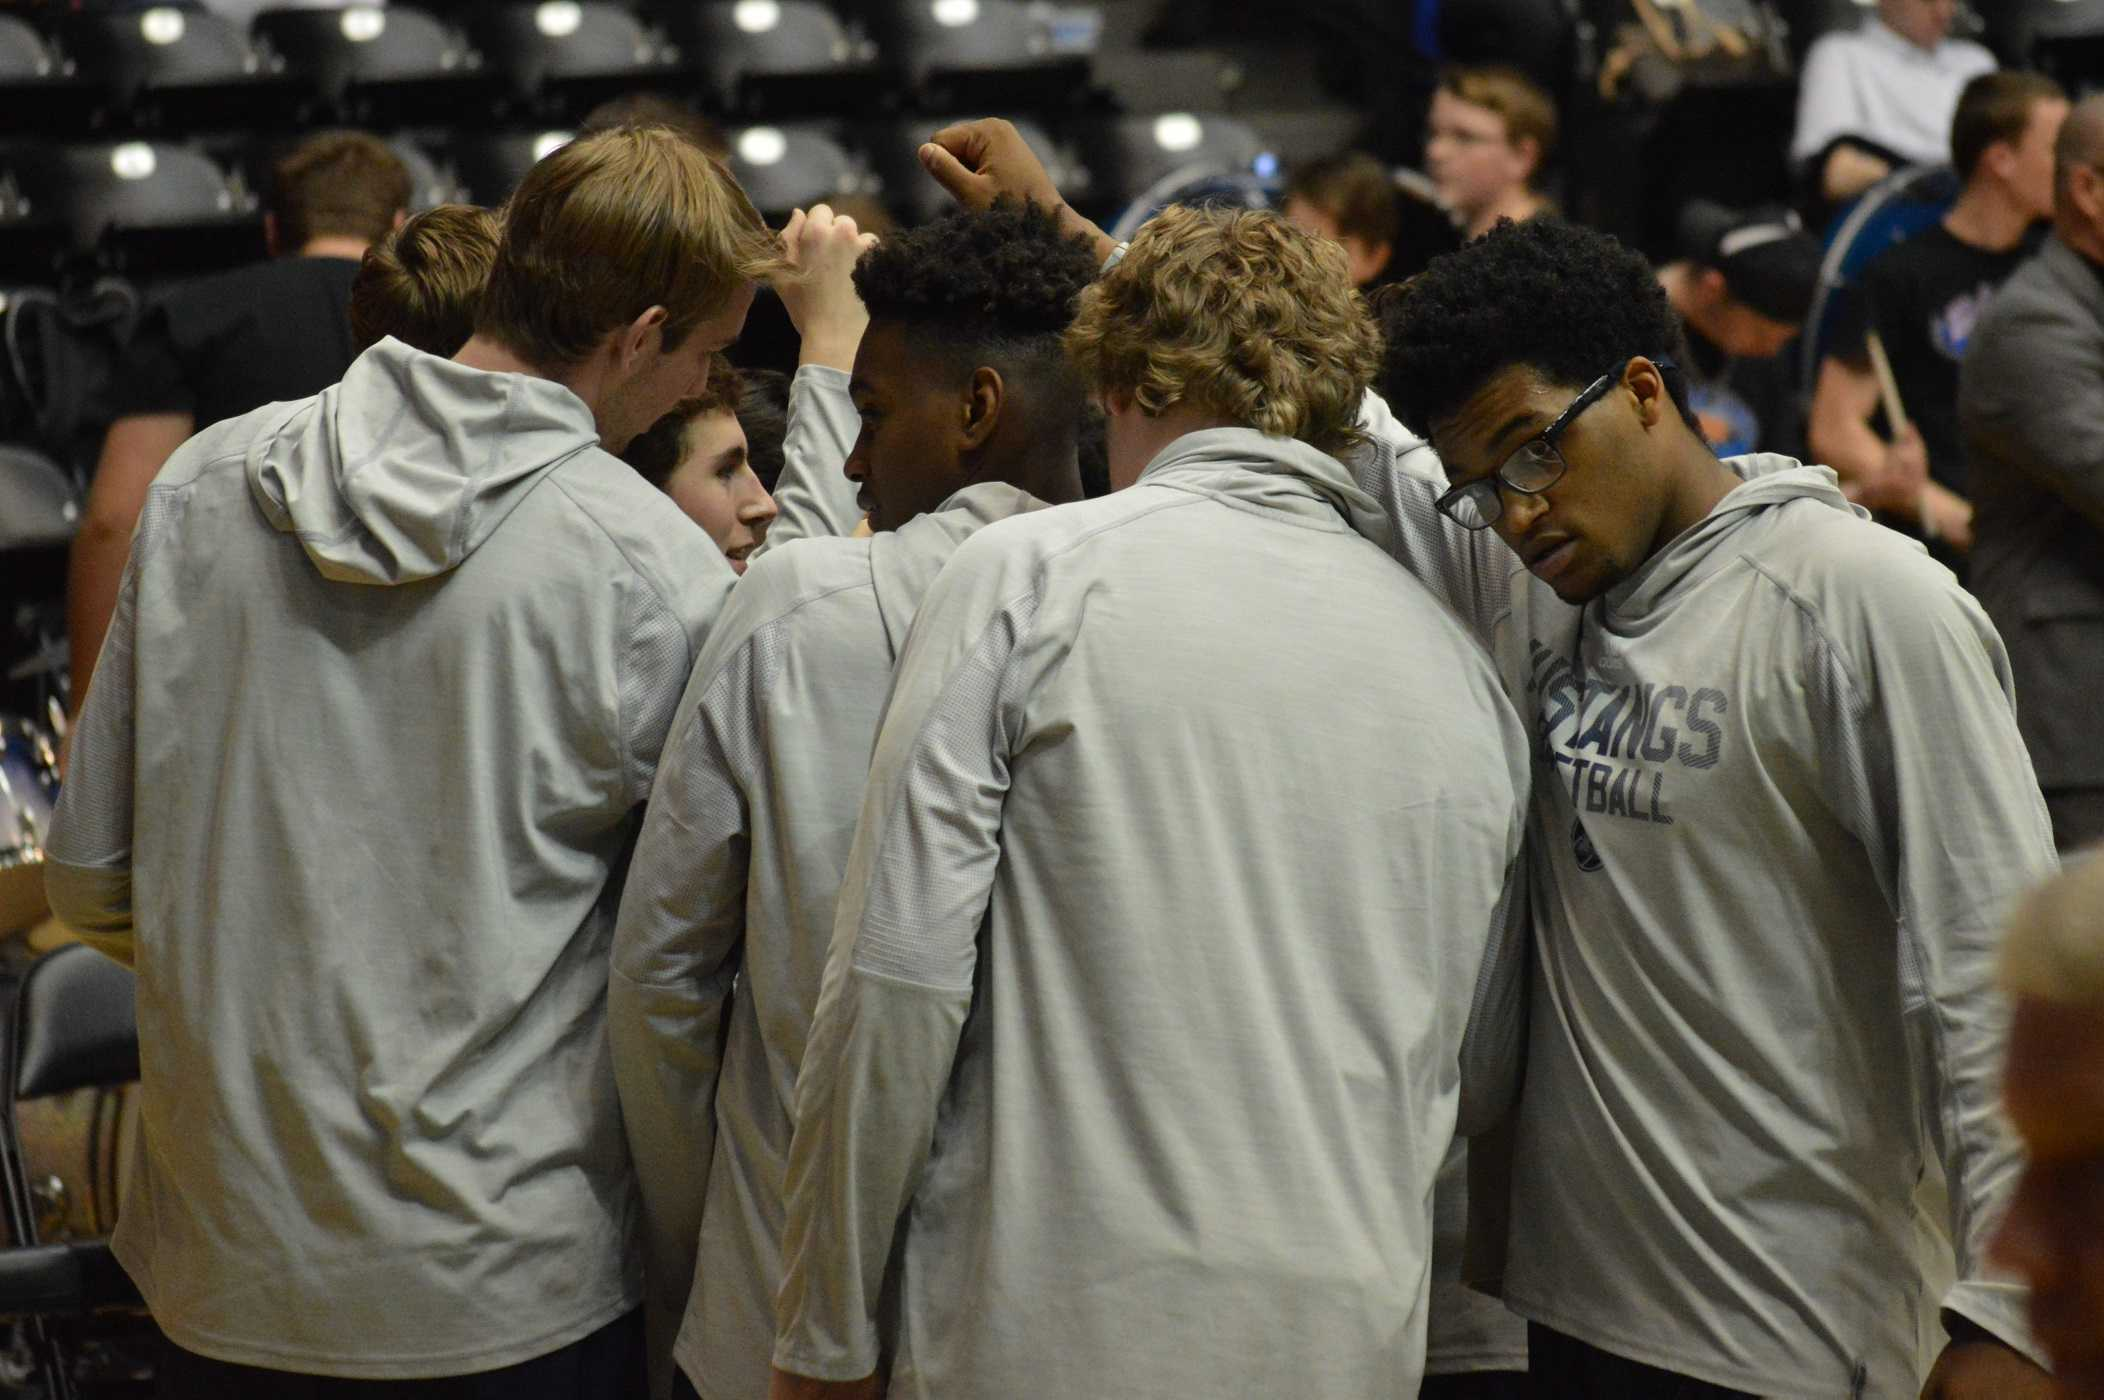 The team huddles together in preparation for the game.